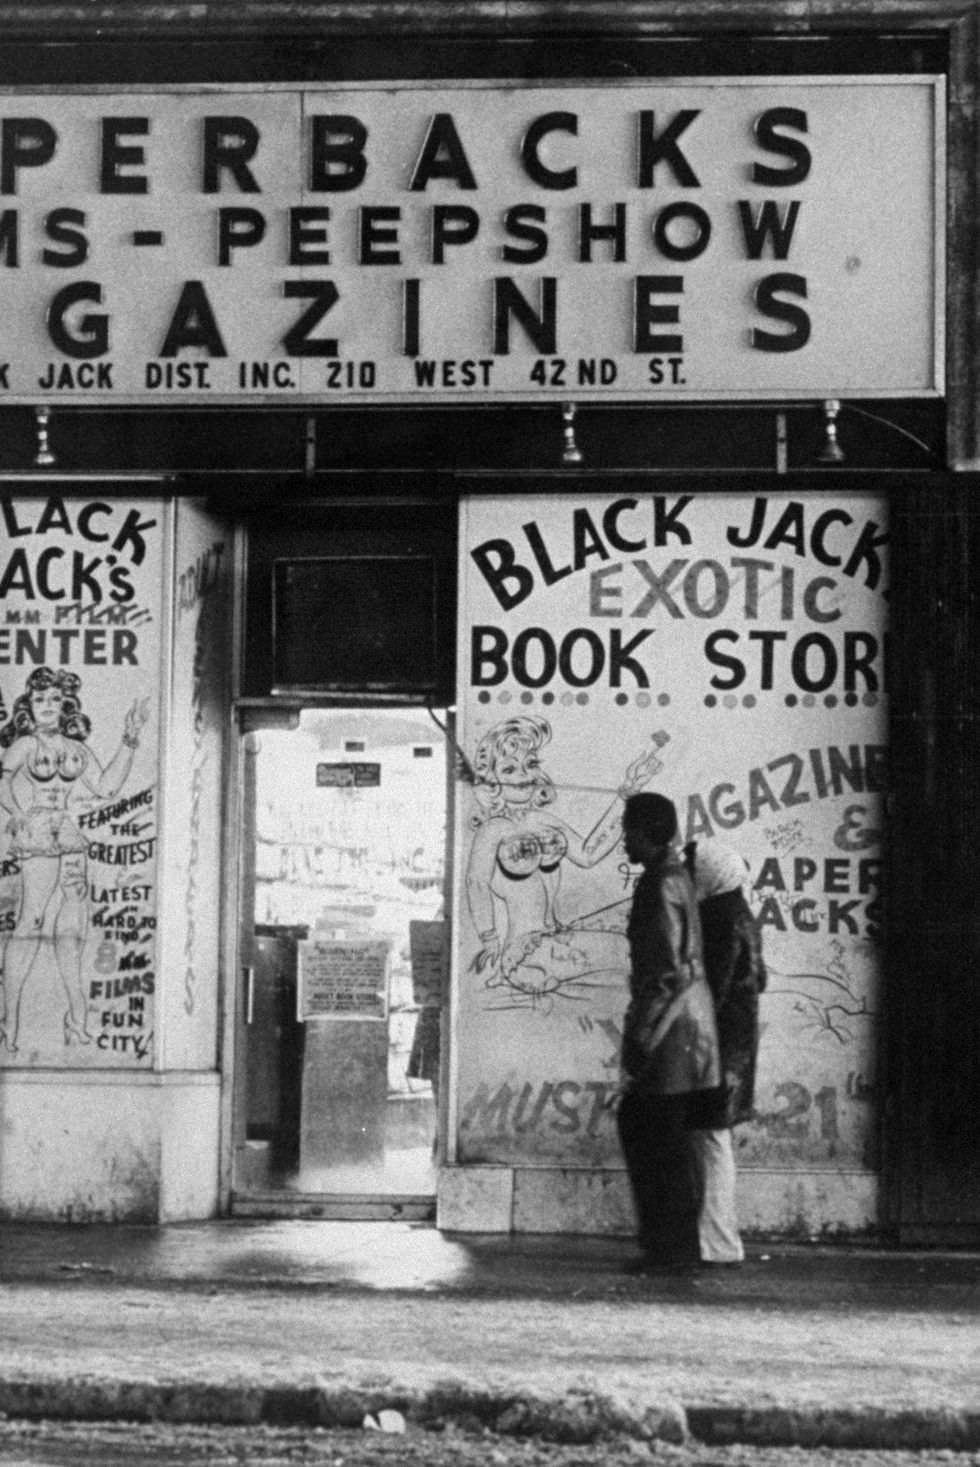 """Black Jack Exotic Book Store on 42nd Street between Seventh and Eighth Avenue features the """"latest and greatest."""" These stores were rampant in the 1970s."""